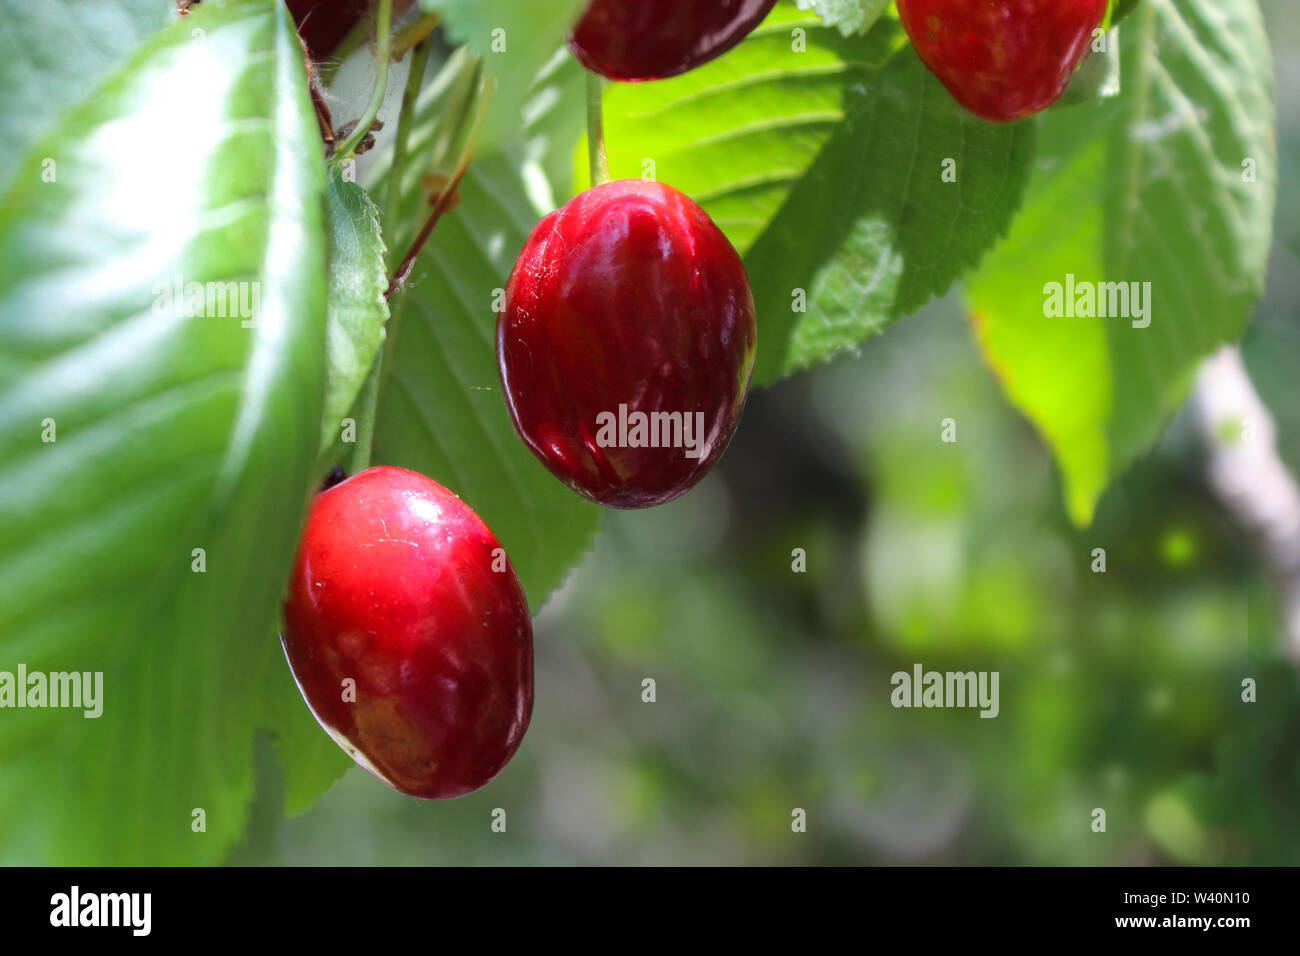 cherry tree branch with fruit and leaves - Stock Image